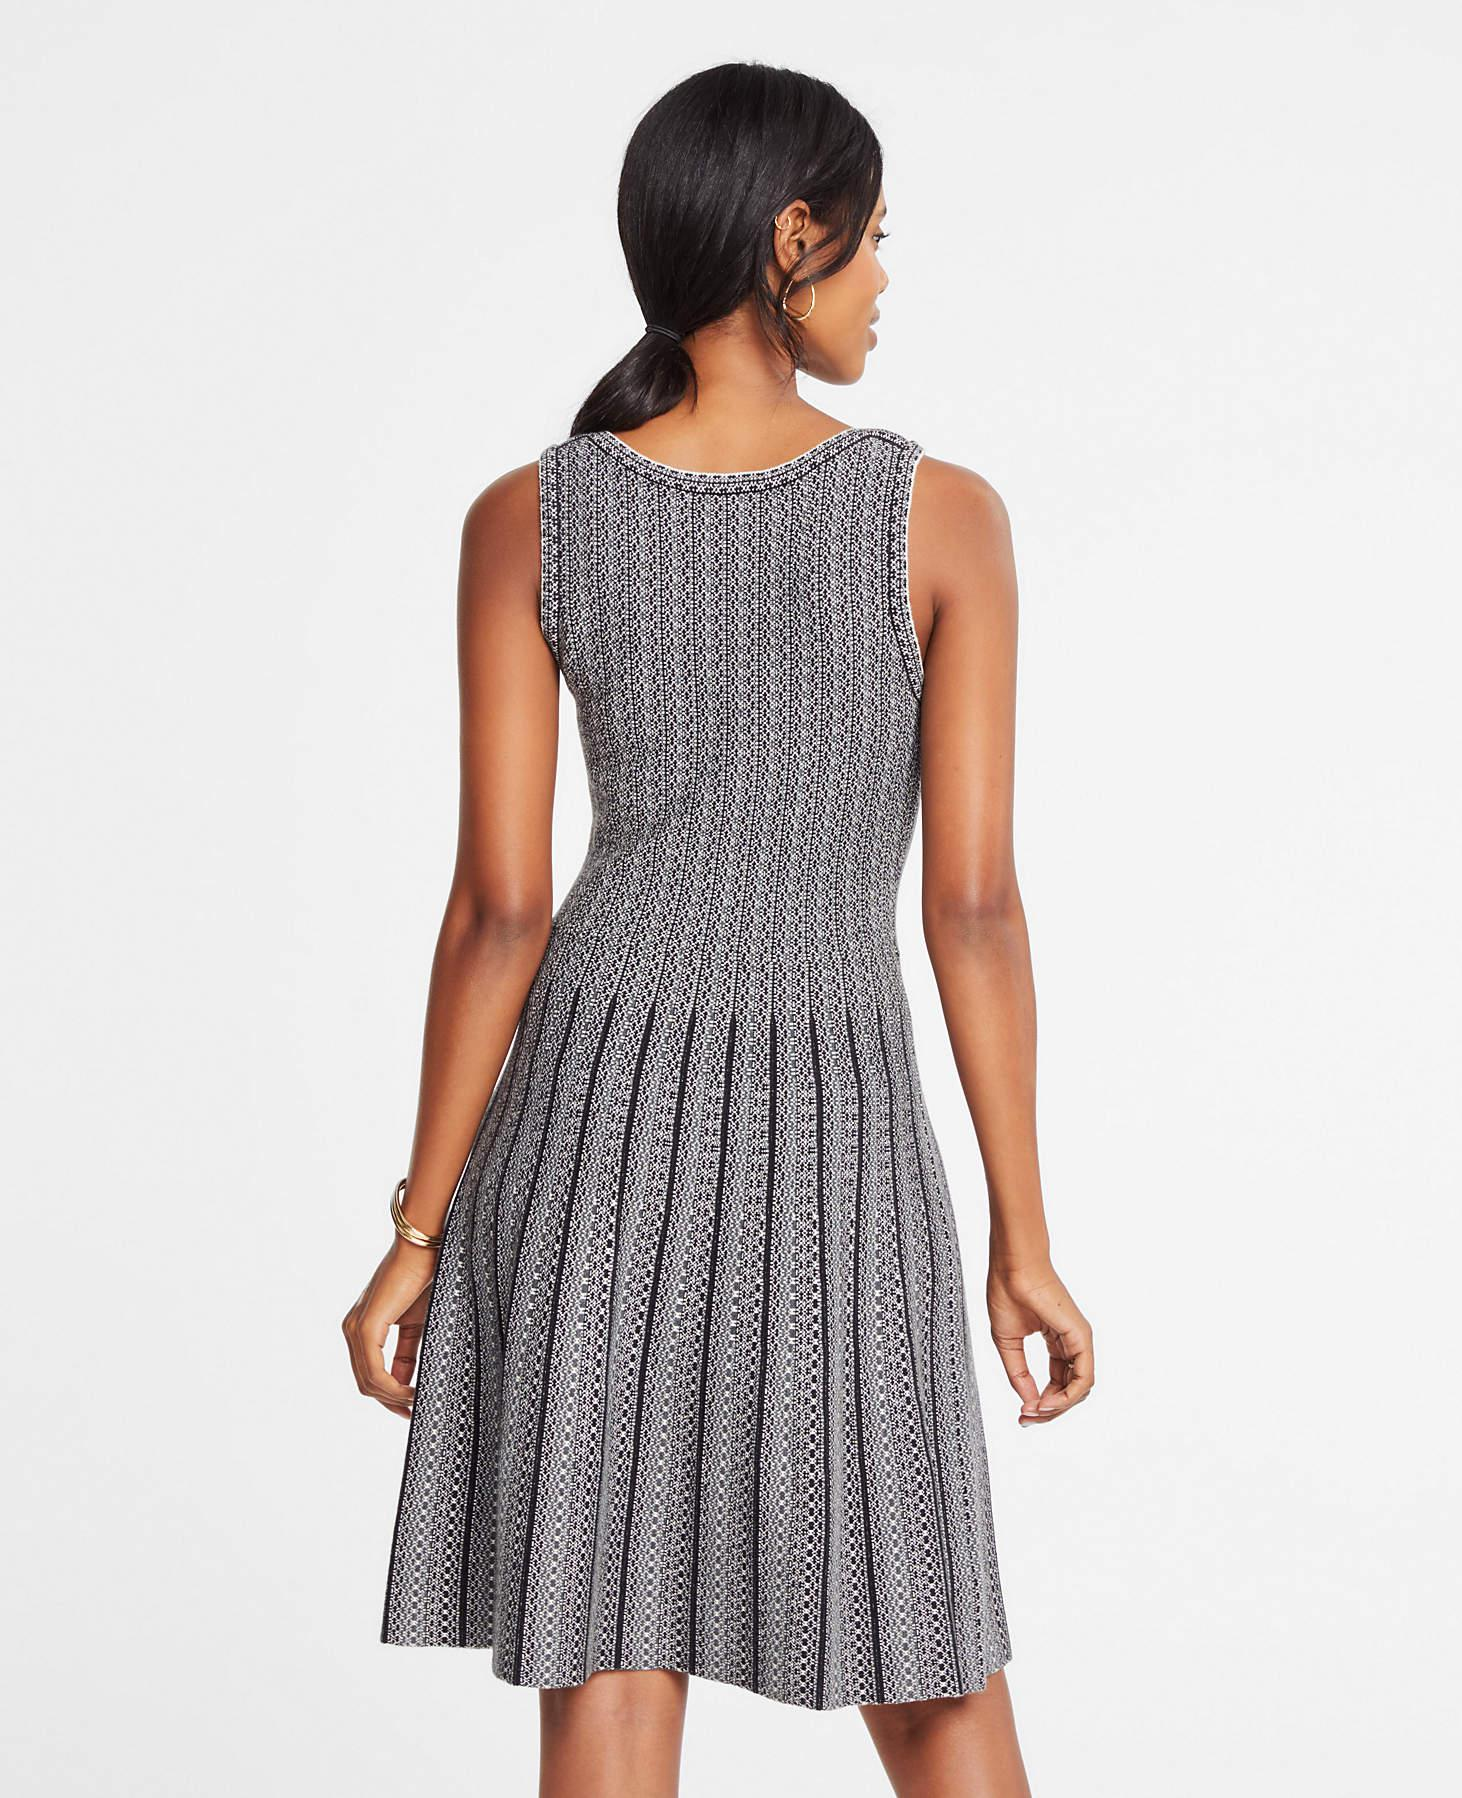 725664c2e16 Ann Taylor Jacquard Pleated Flare Sweater Dress in Gray - Lyst